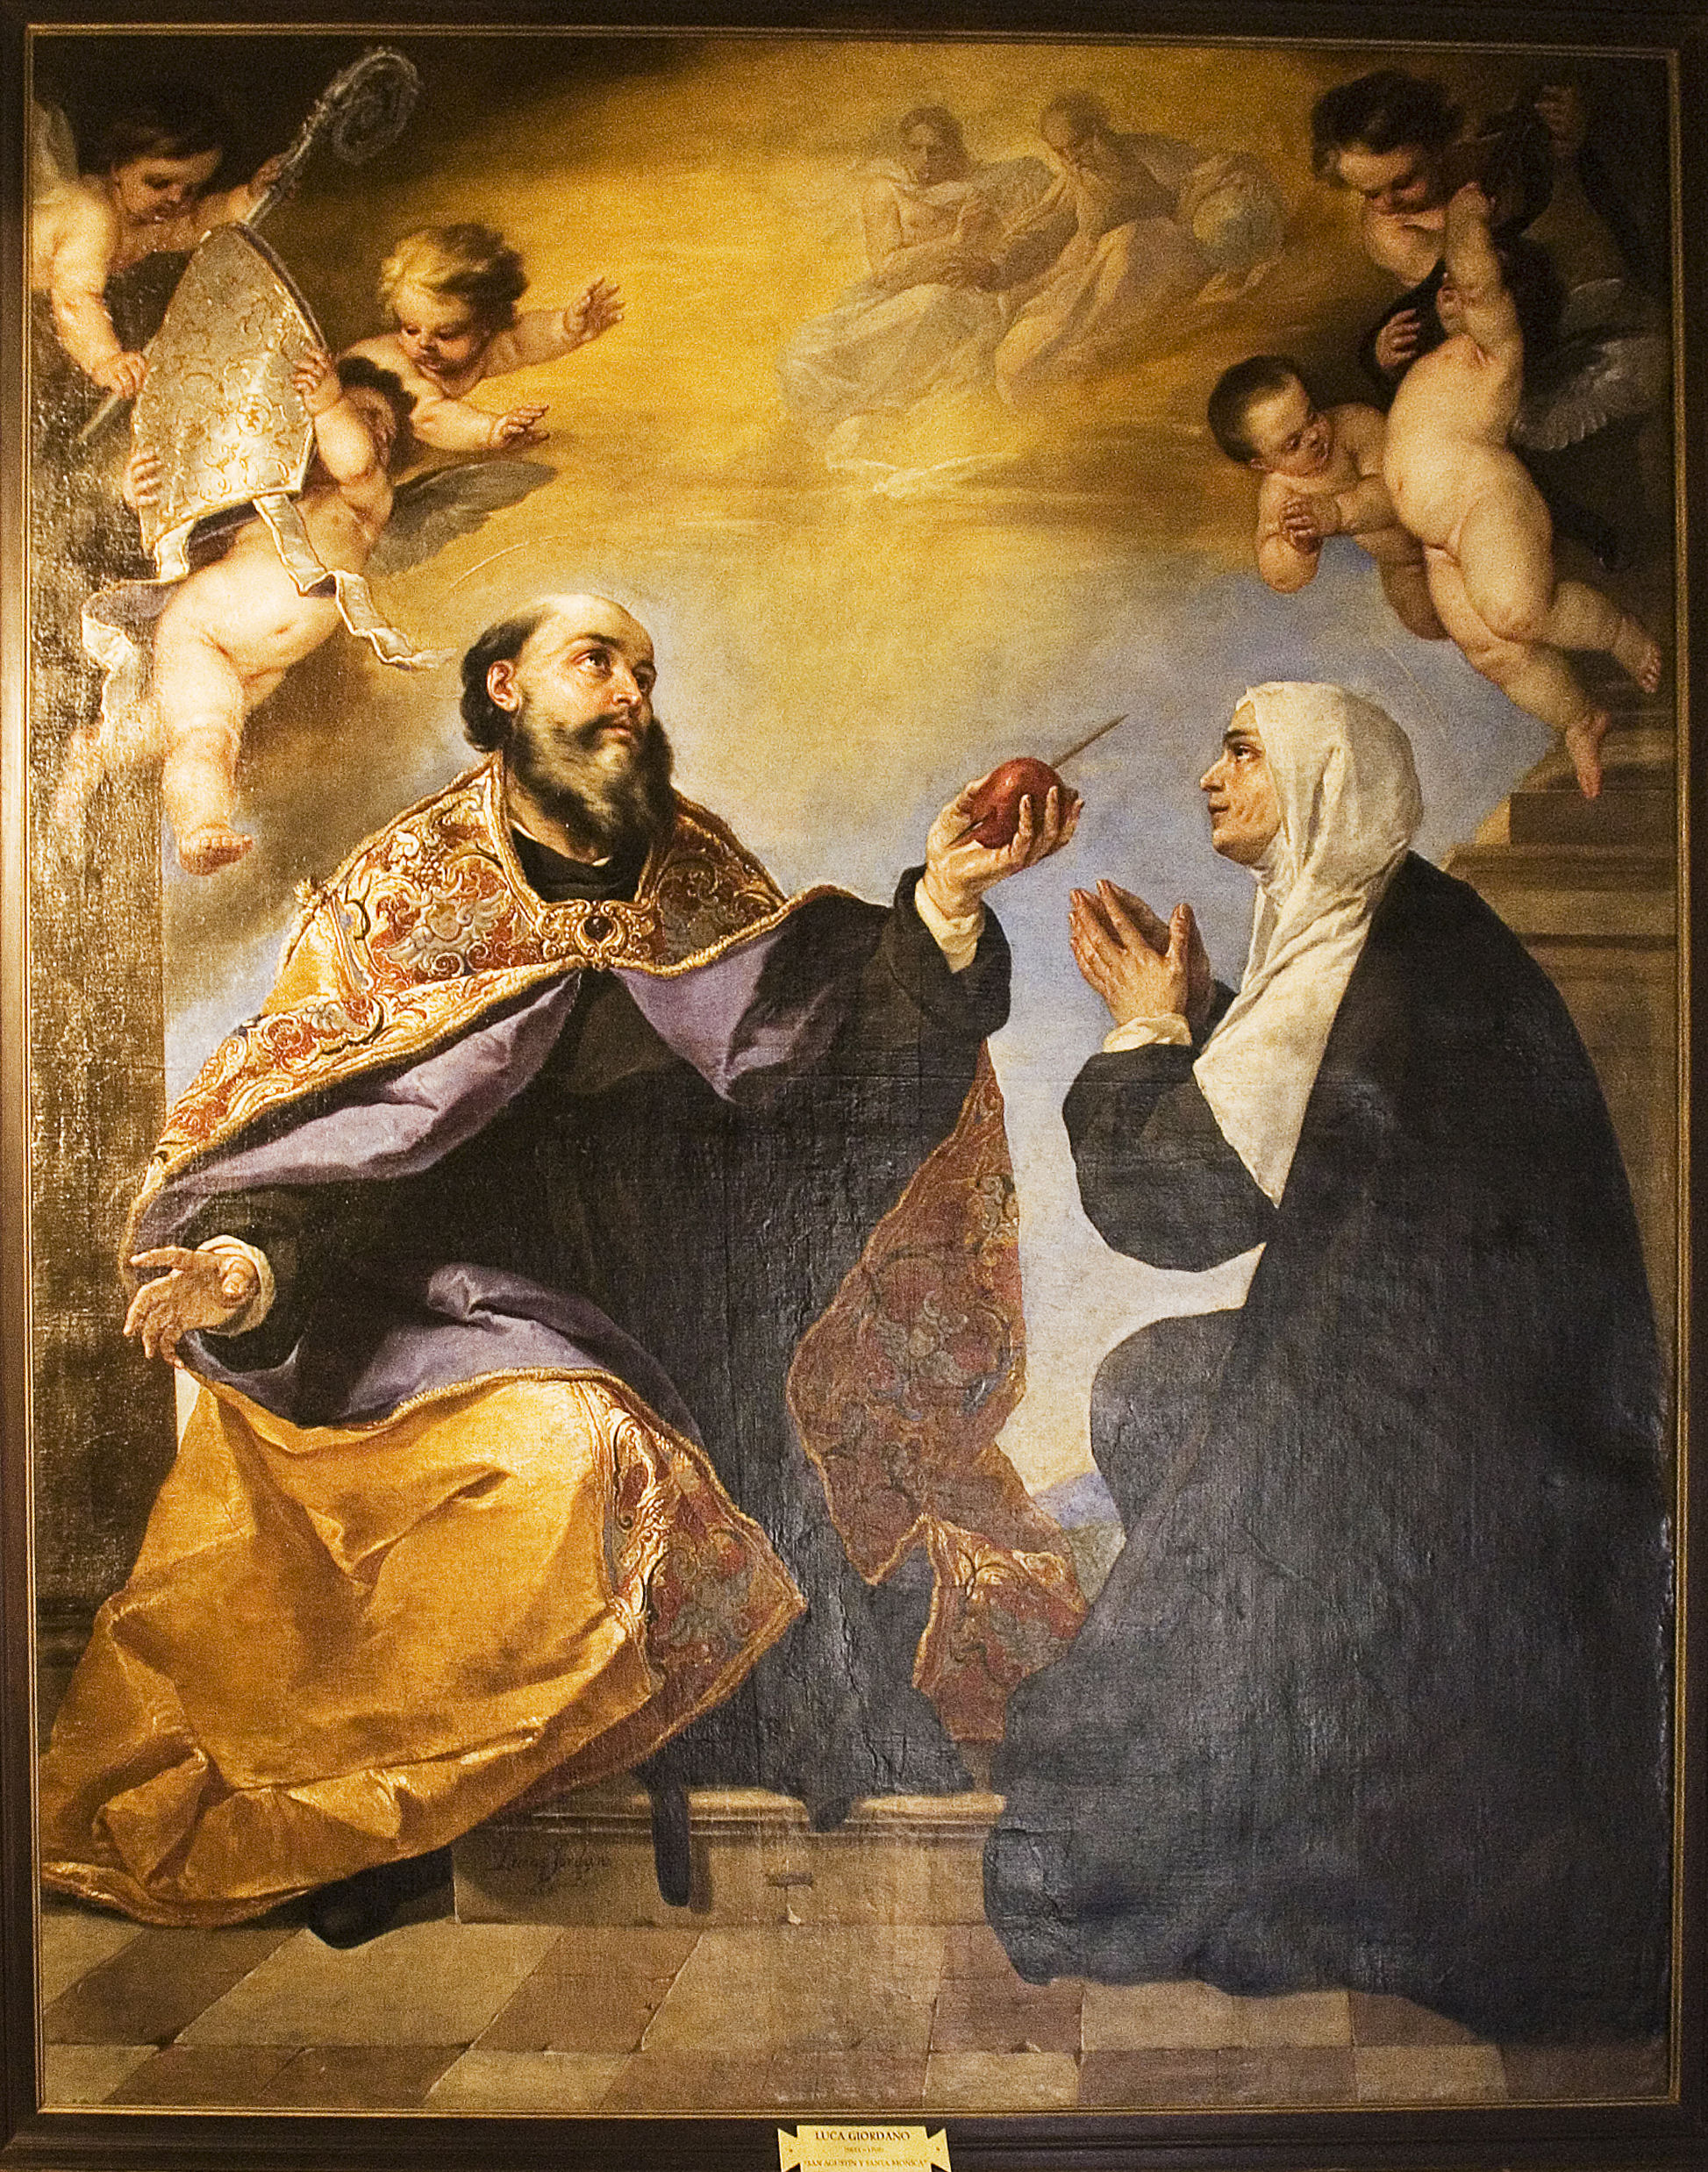 August 27 and 28: Feast Days of St. Monica and St. Augustine